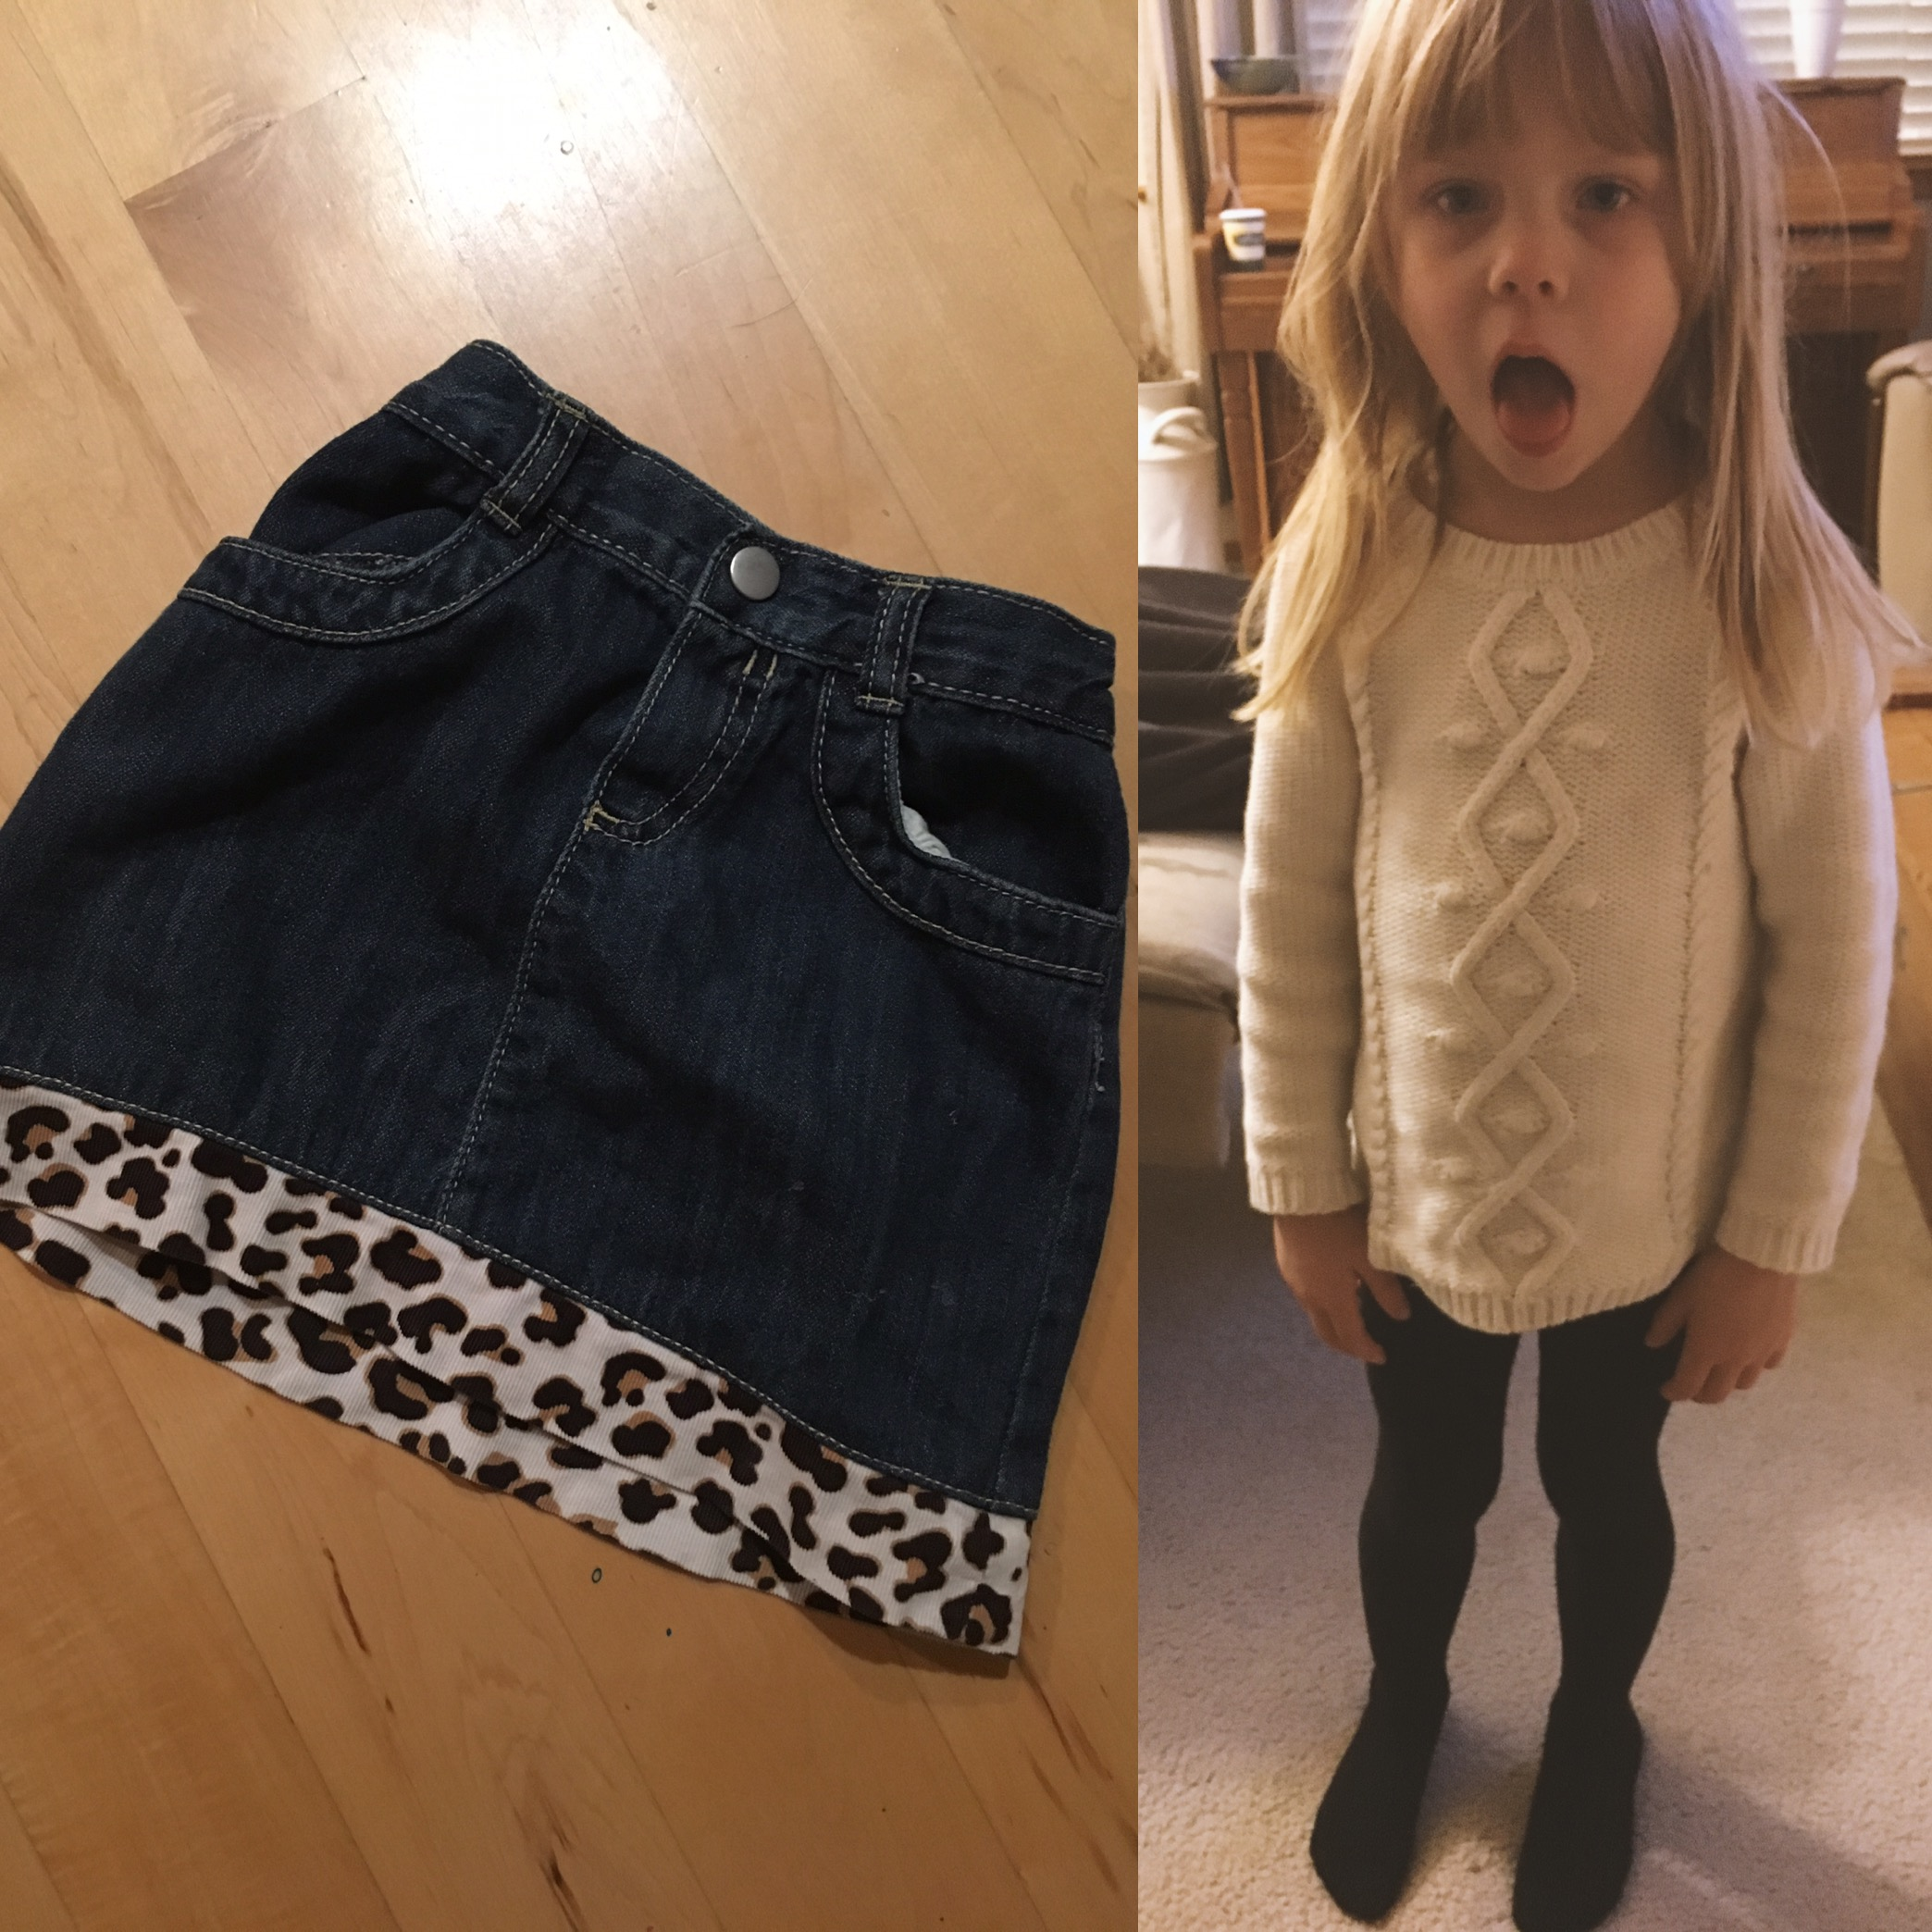 photo on left is of the returned skirt - on the right, the evening she came home sans skirt